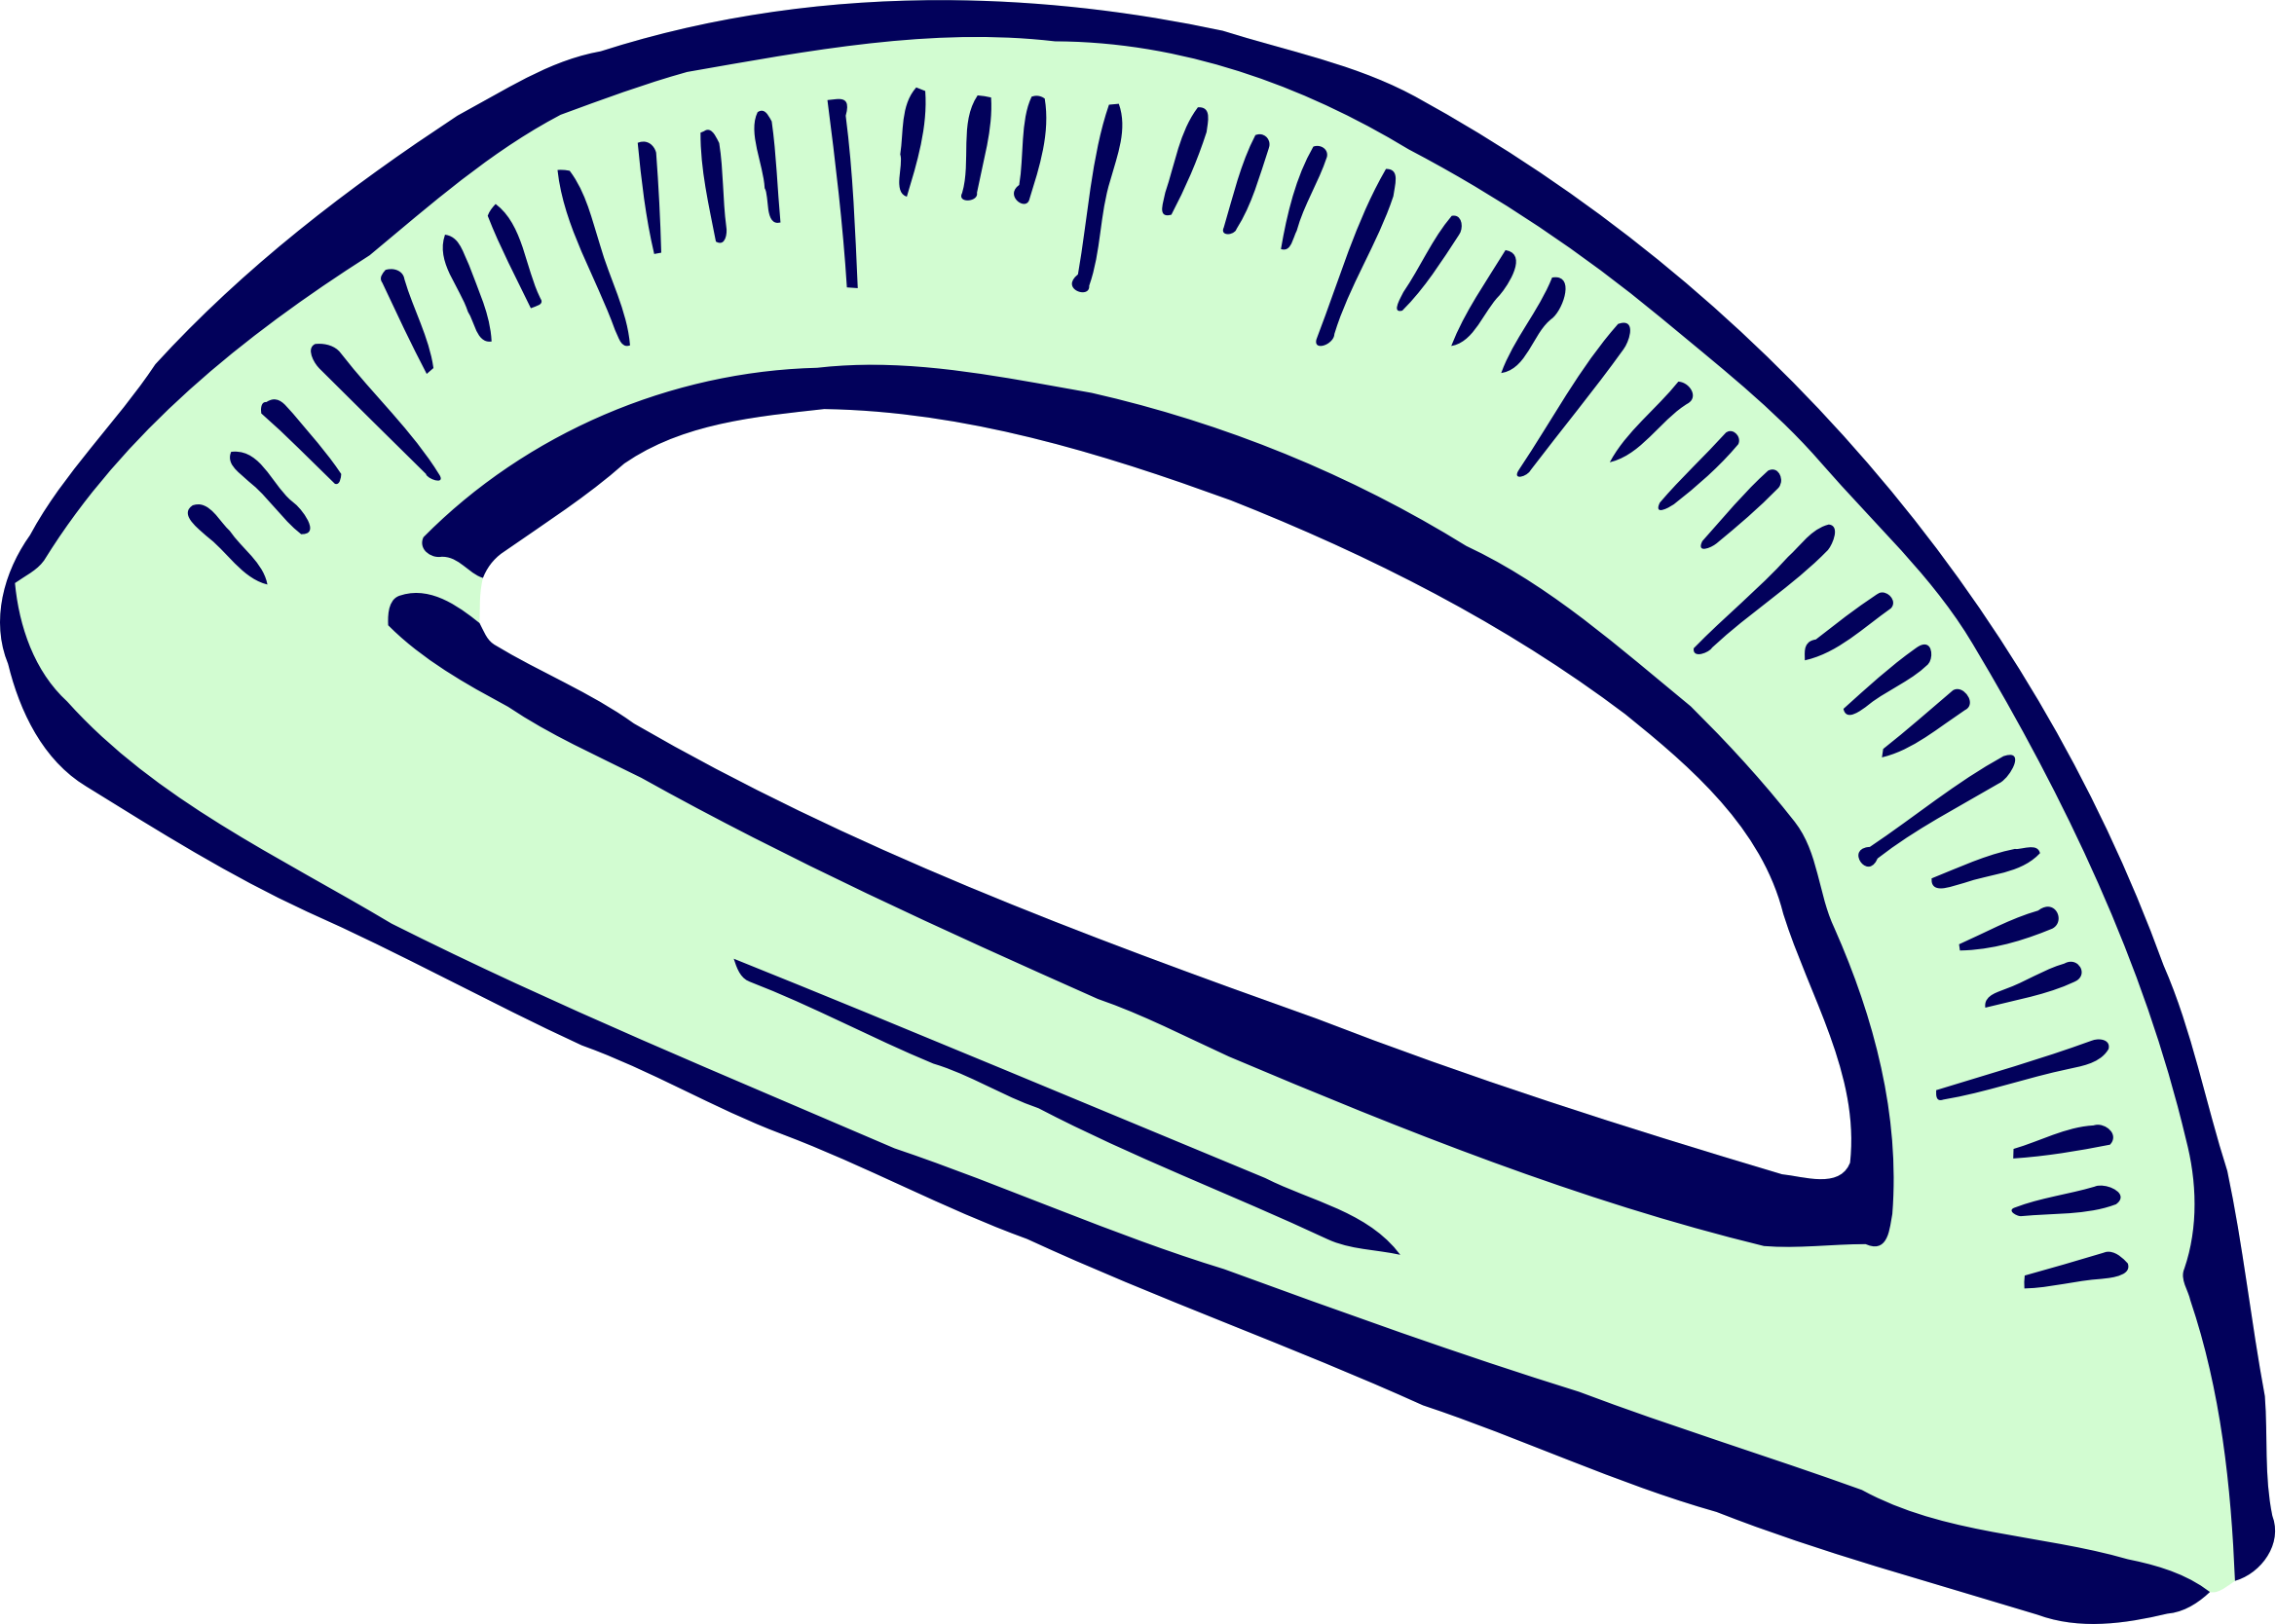 Roughly drawn protractor by Firkin